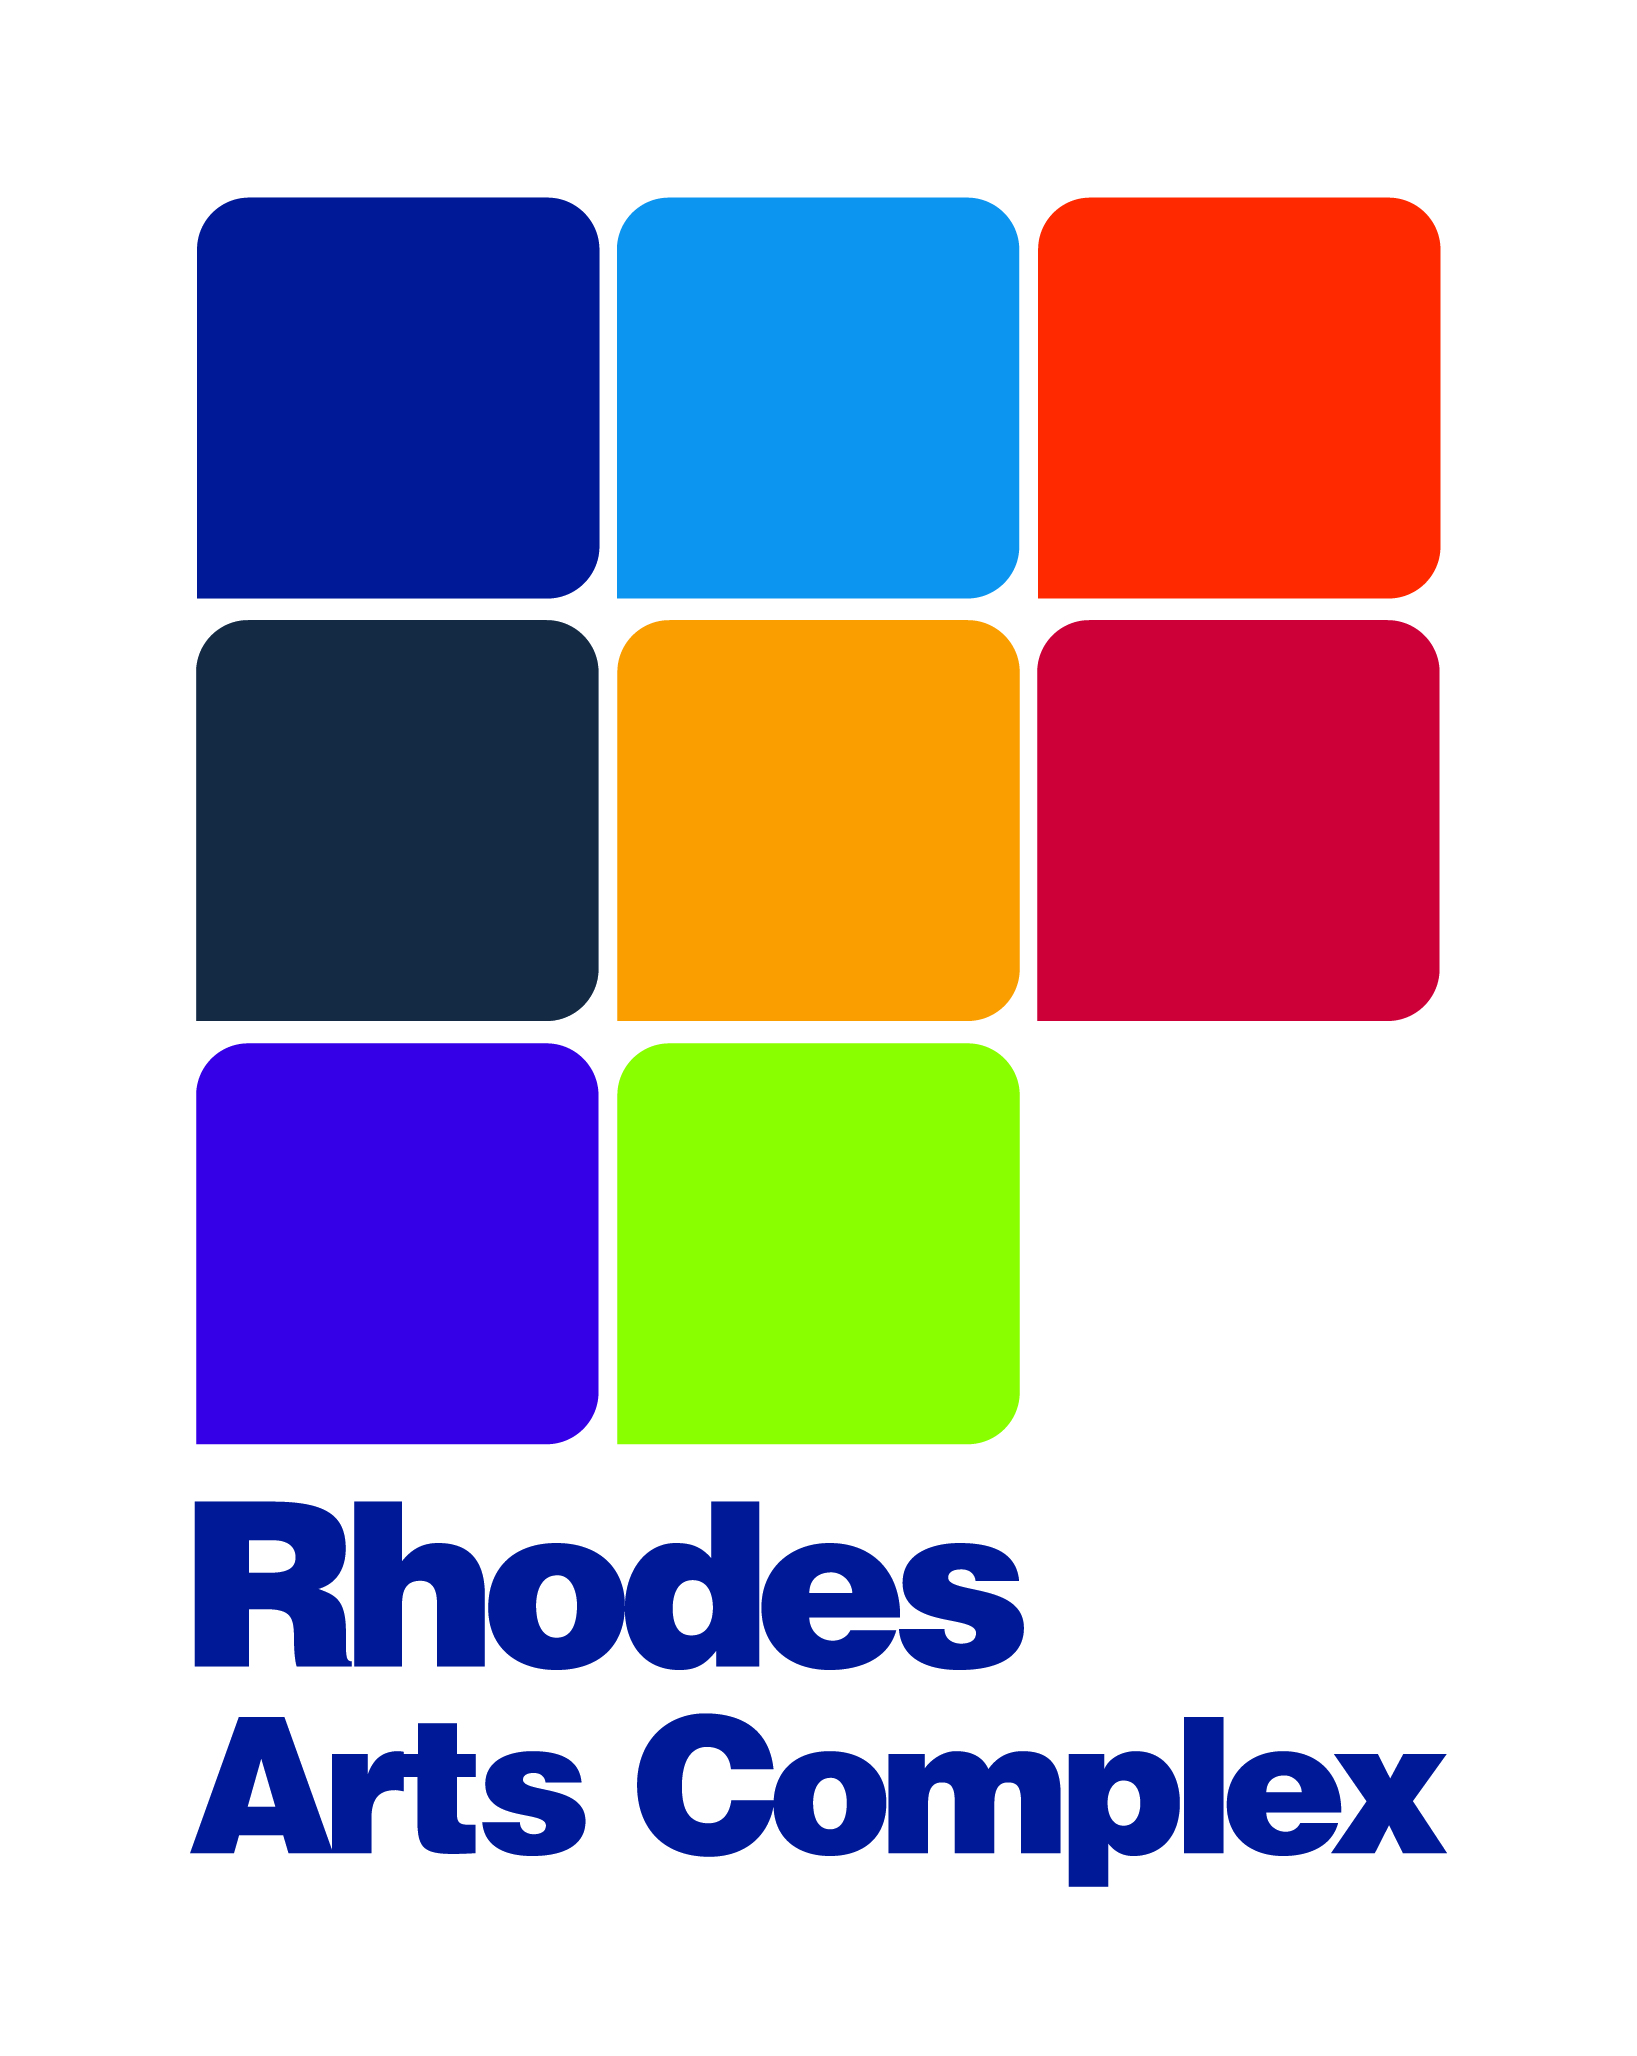 Rhodes Arts Complex map